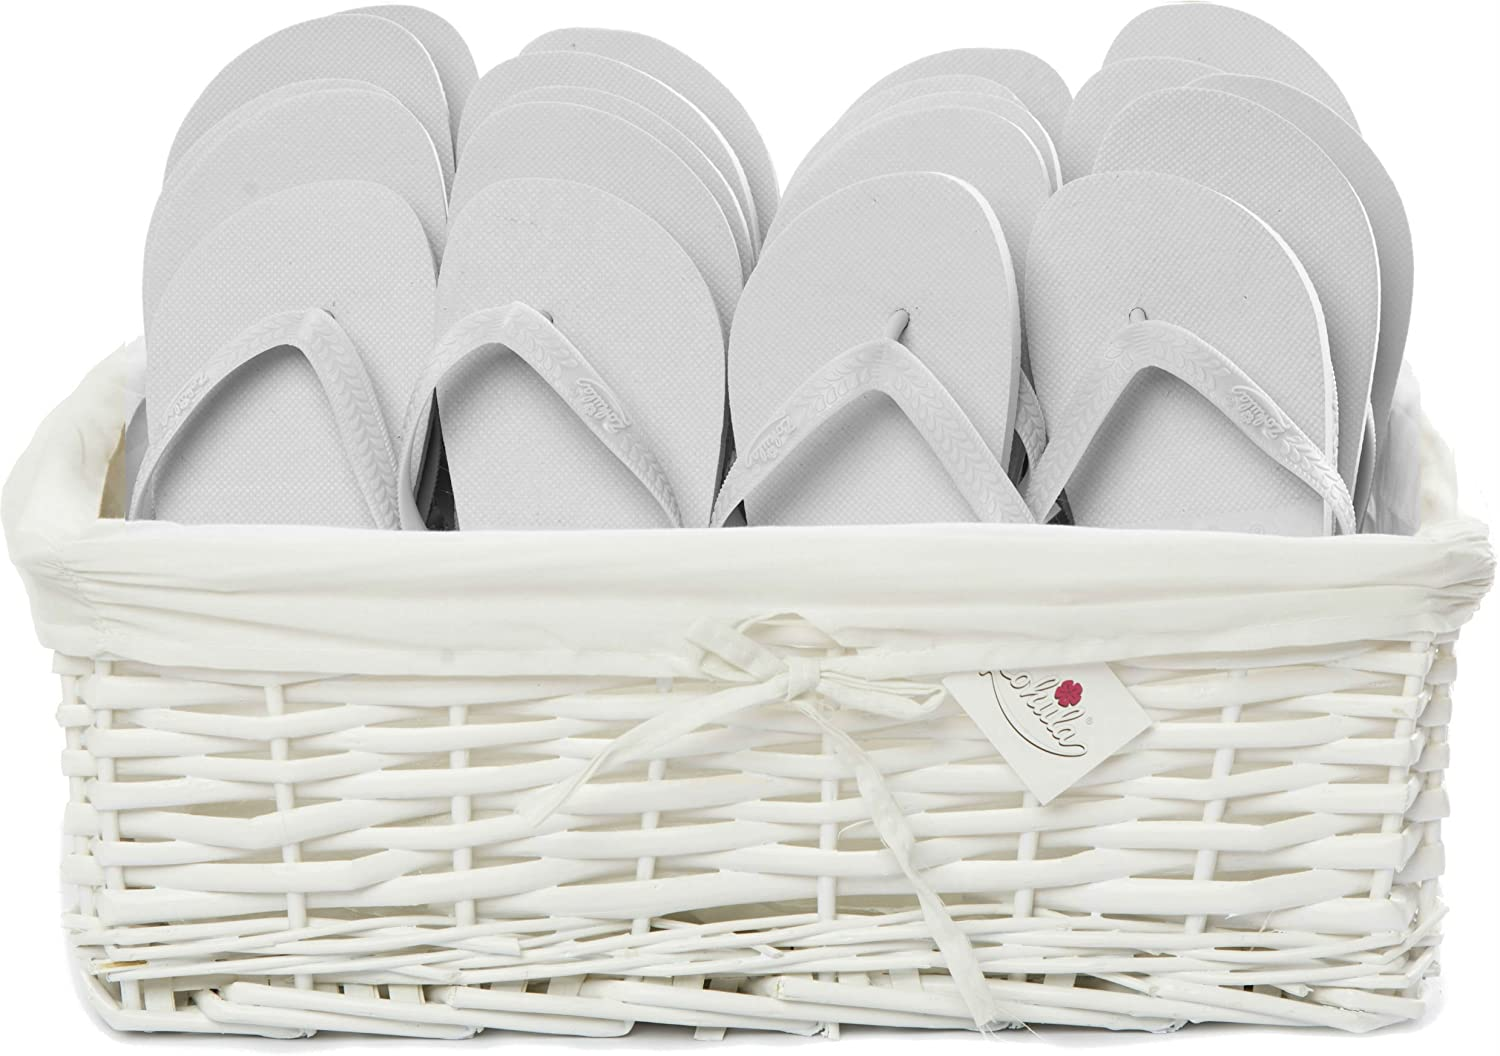 3b7dc48480e157 Zohula White Originals Party Pack - 10 Pairs Medium 5 6-10 Pairs Extra  Large 9 10 - Including Wicker Basket  Amazon.co.uk  Shoes   Bags